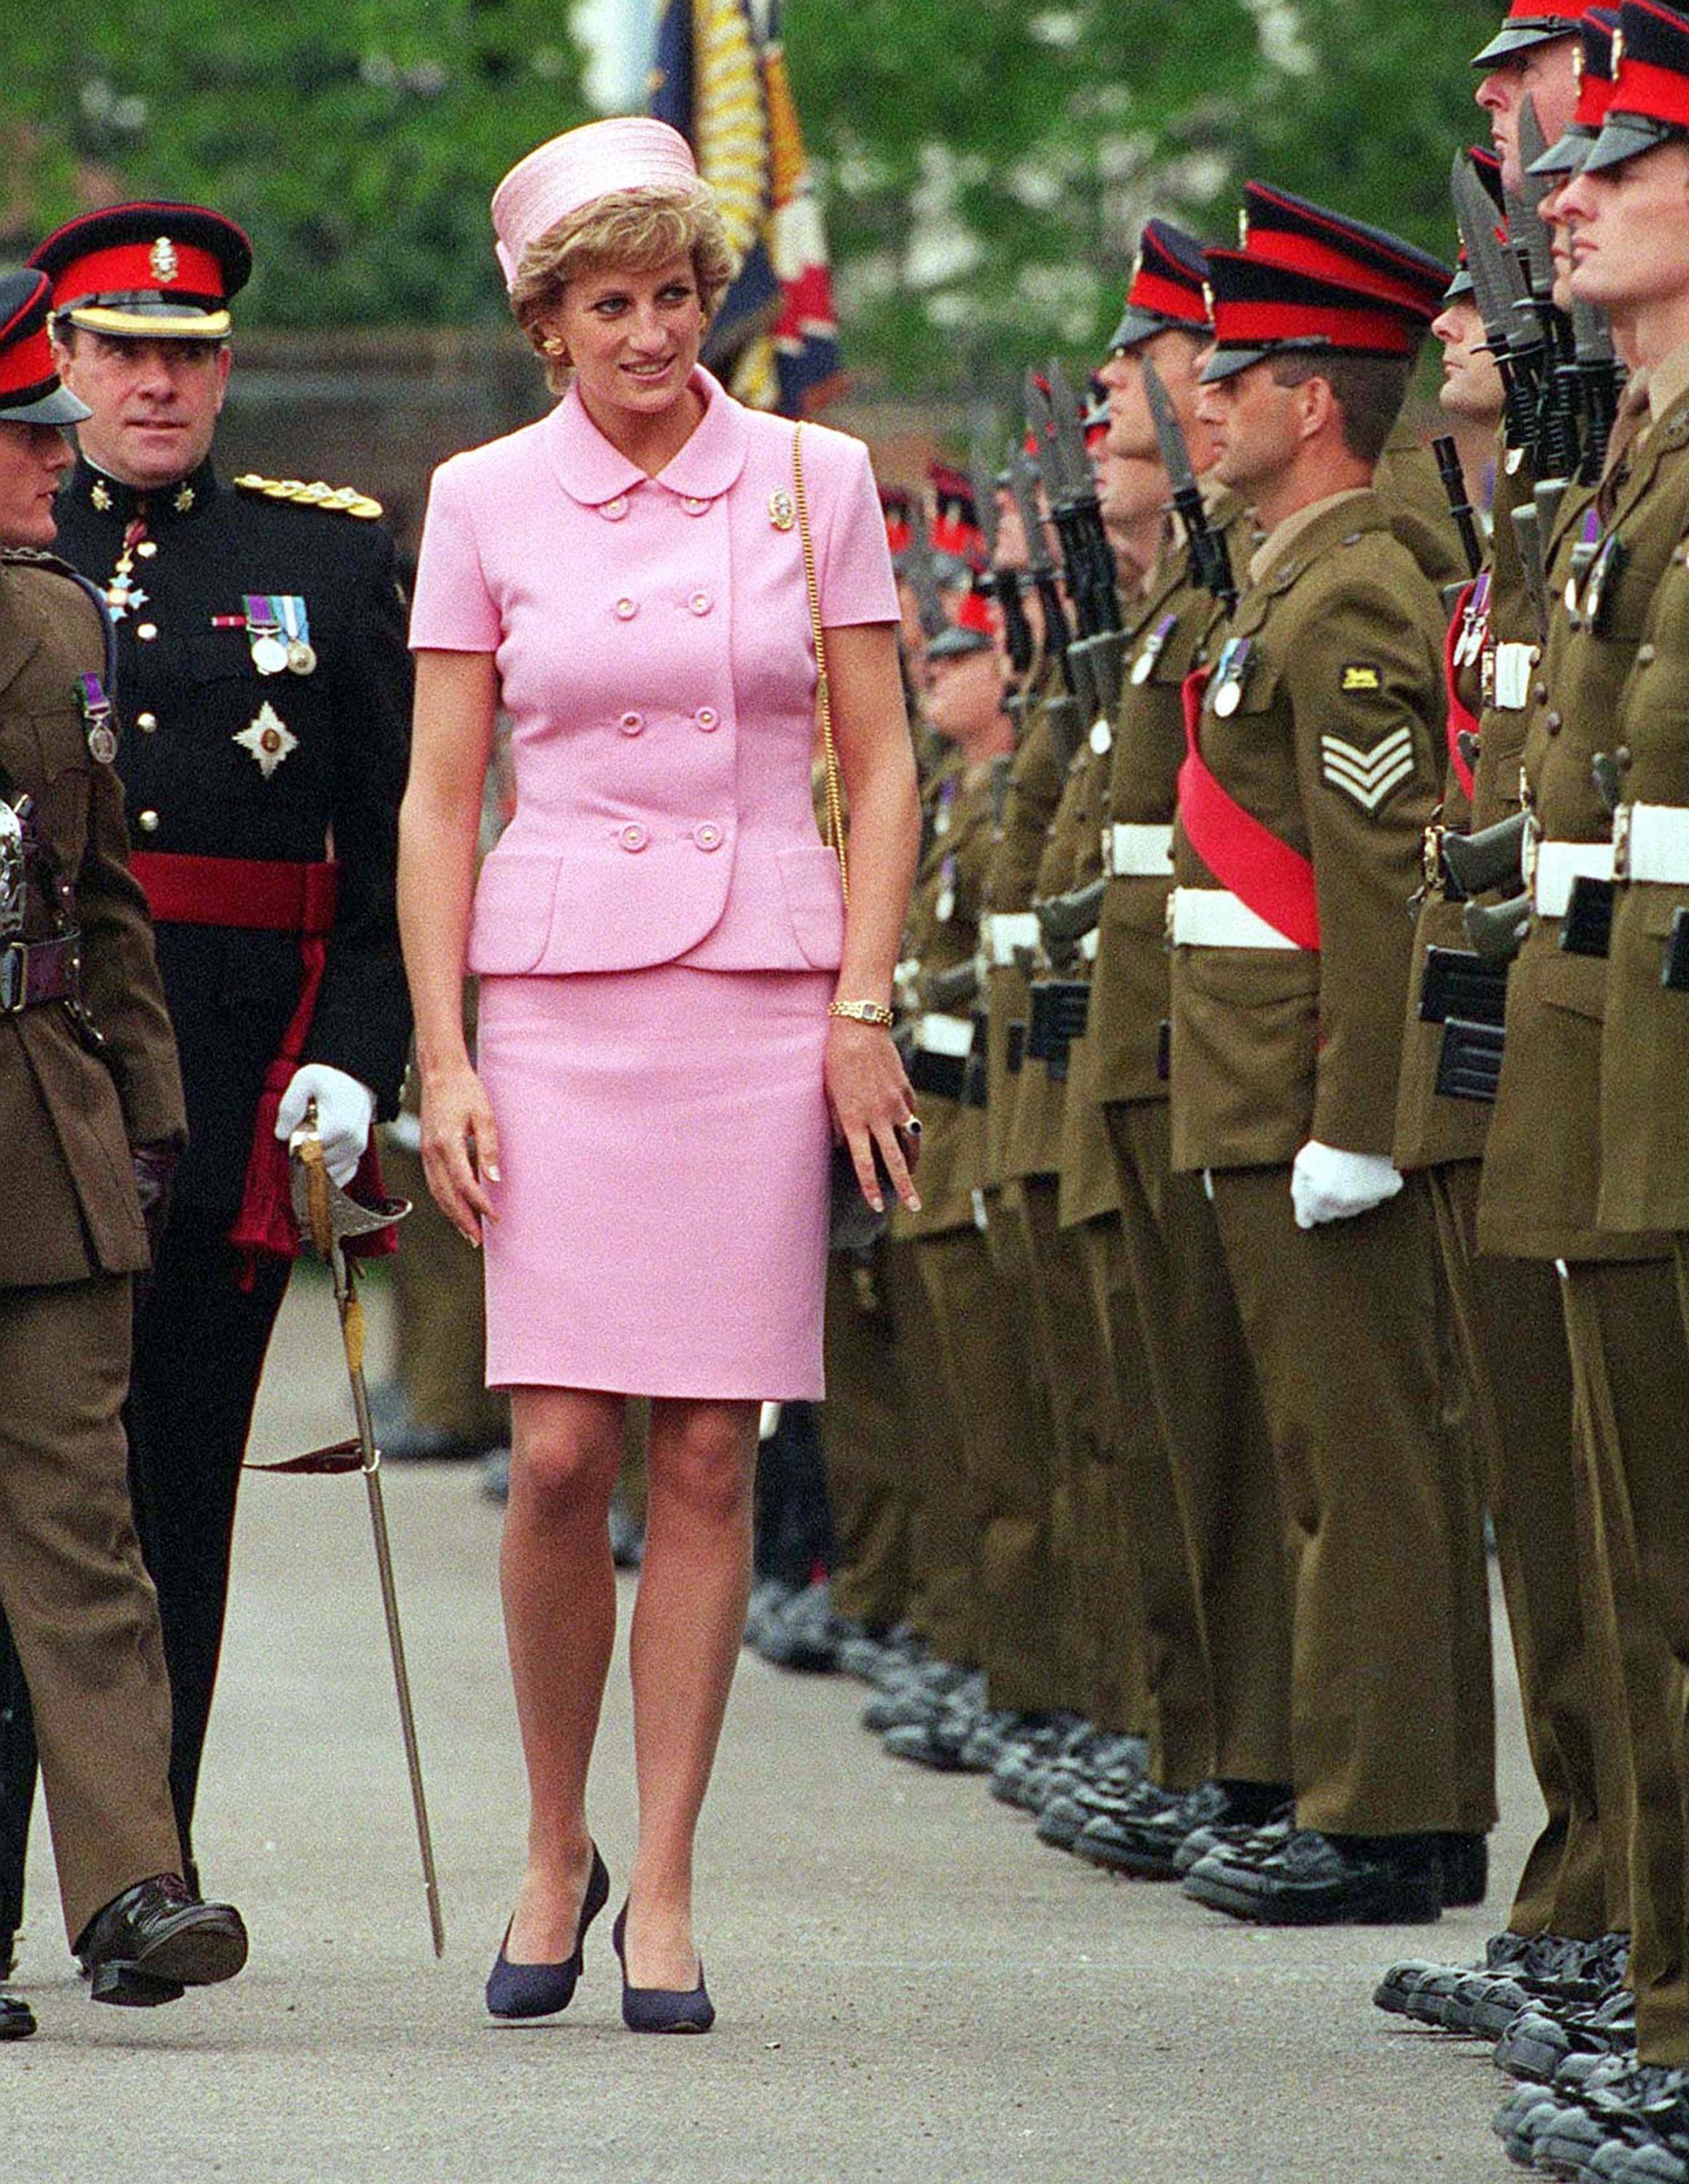 Princess Diana (1961 - 1997) inspecting members of the Queen's and Royal Hampshire Regiment during a visit to Howe Barracks, Canterbury, Kent, May 1995. She is wearing a Versace suit and a hat by Philip Somerville. (Photo by Jayne Fincher/Getty Images)